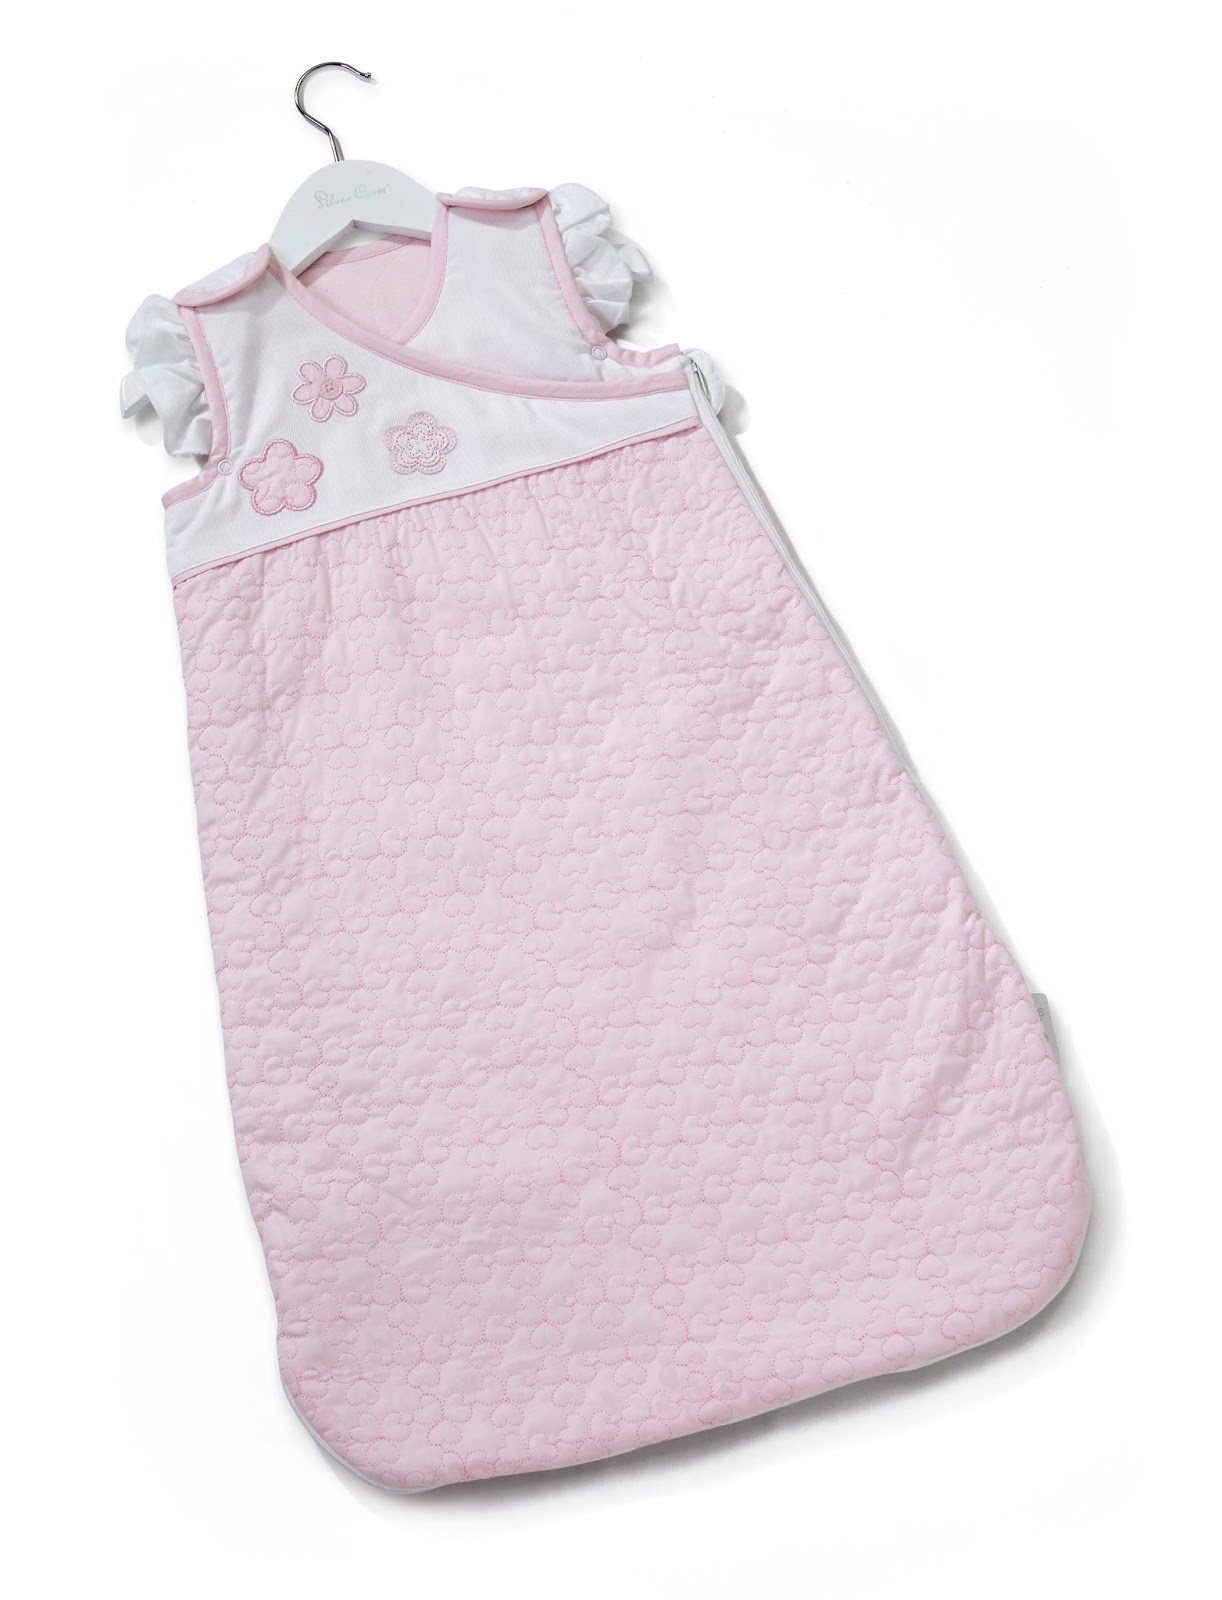 Silver Cross Sleepsuit Royal Baby Gift Guide